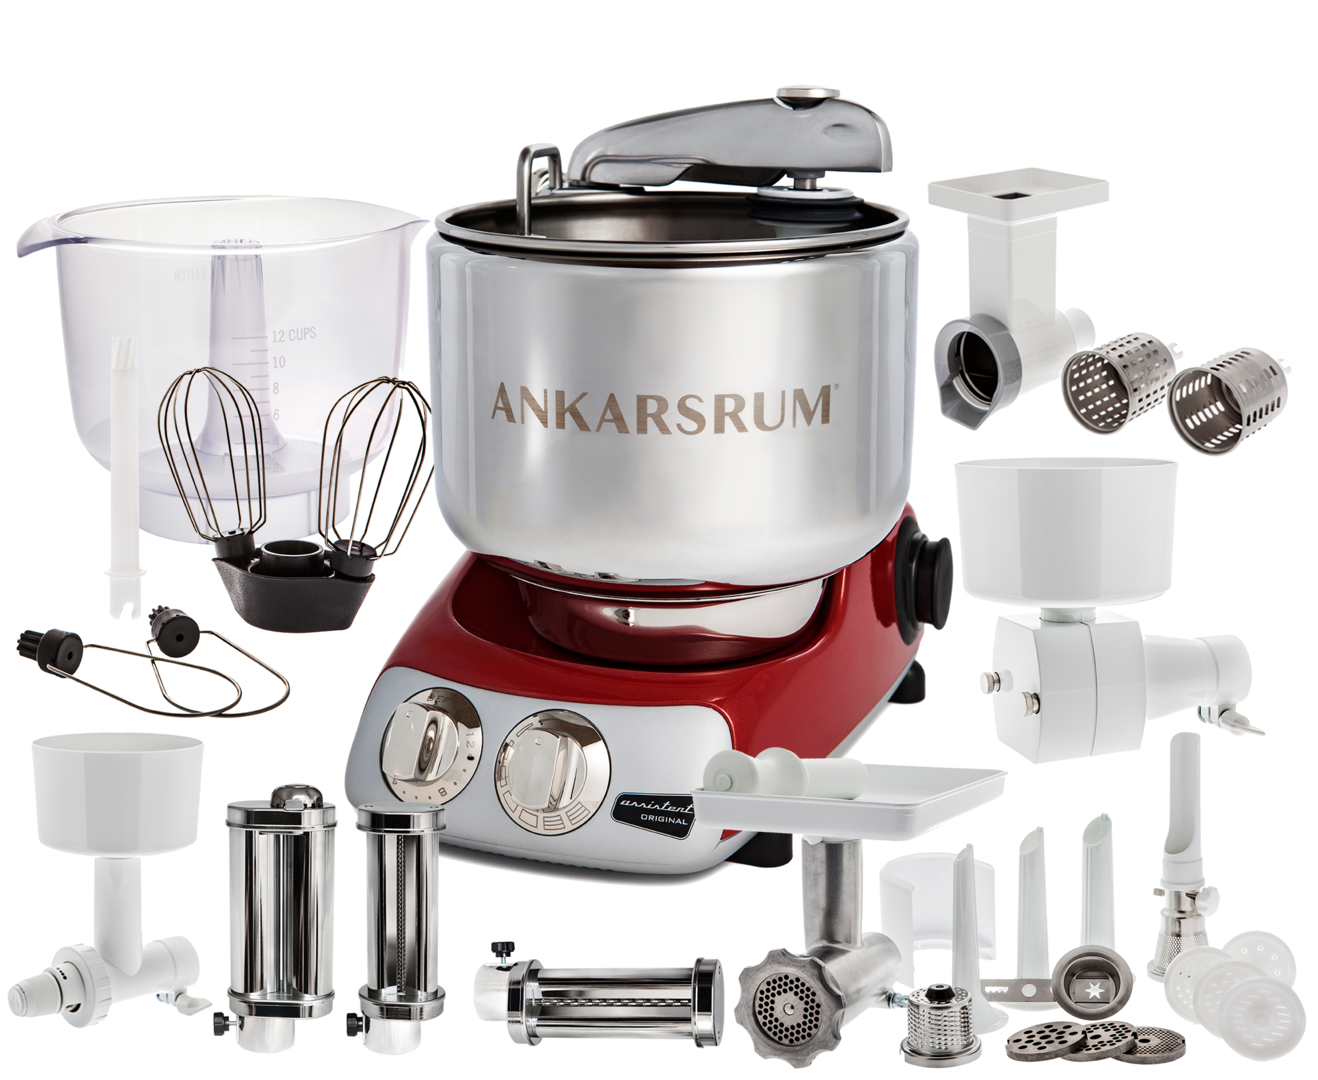 Ankarsrum Original AKM6230R Total mixer, Red (2300105)